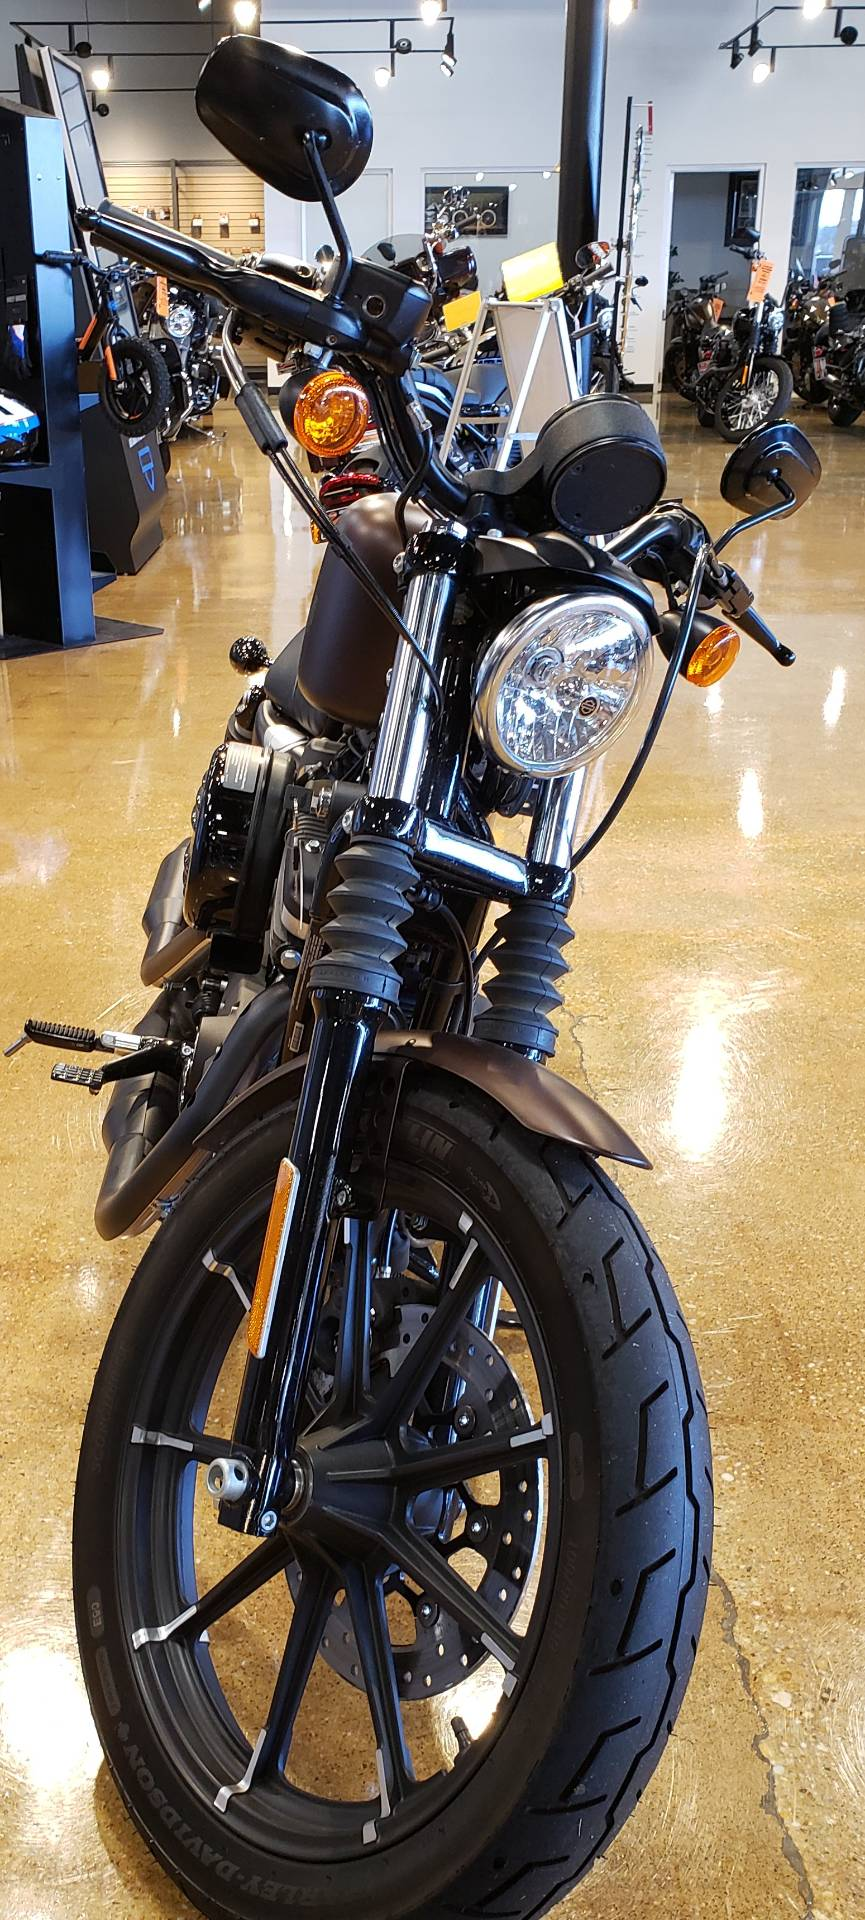 2019 Harley-Davidson IRON 883 in West Long Branch, New Jersey - Photo 4